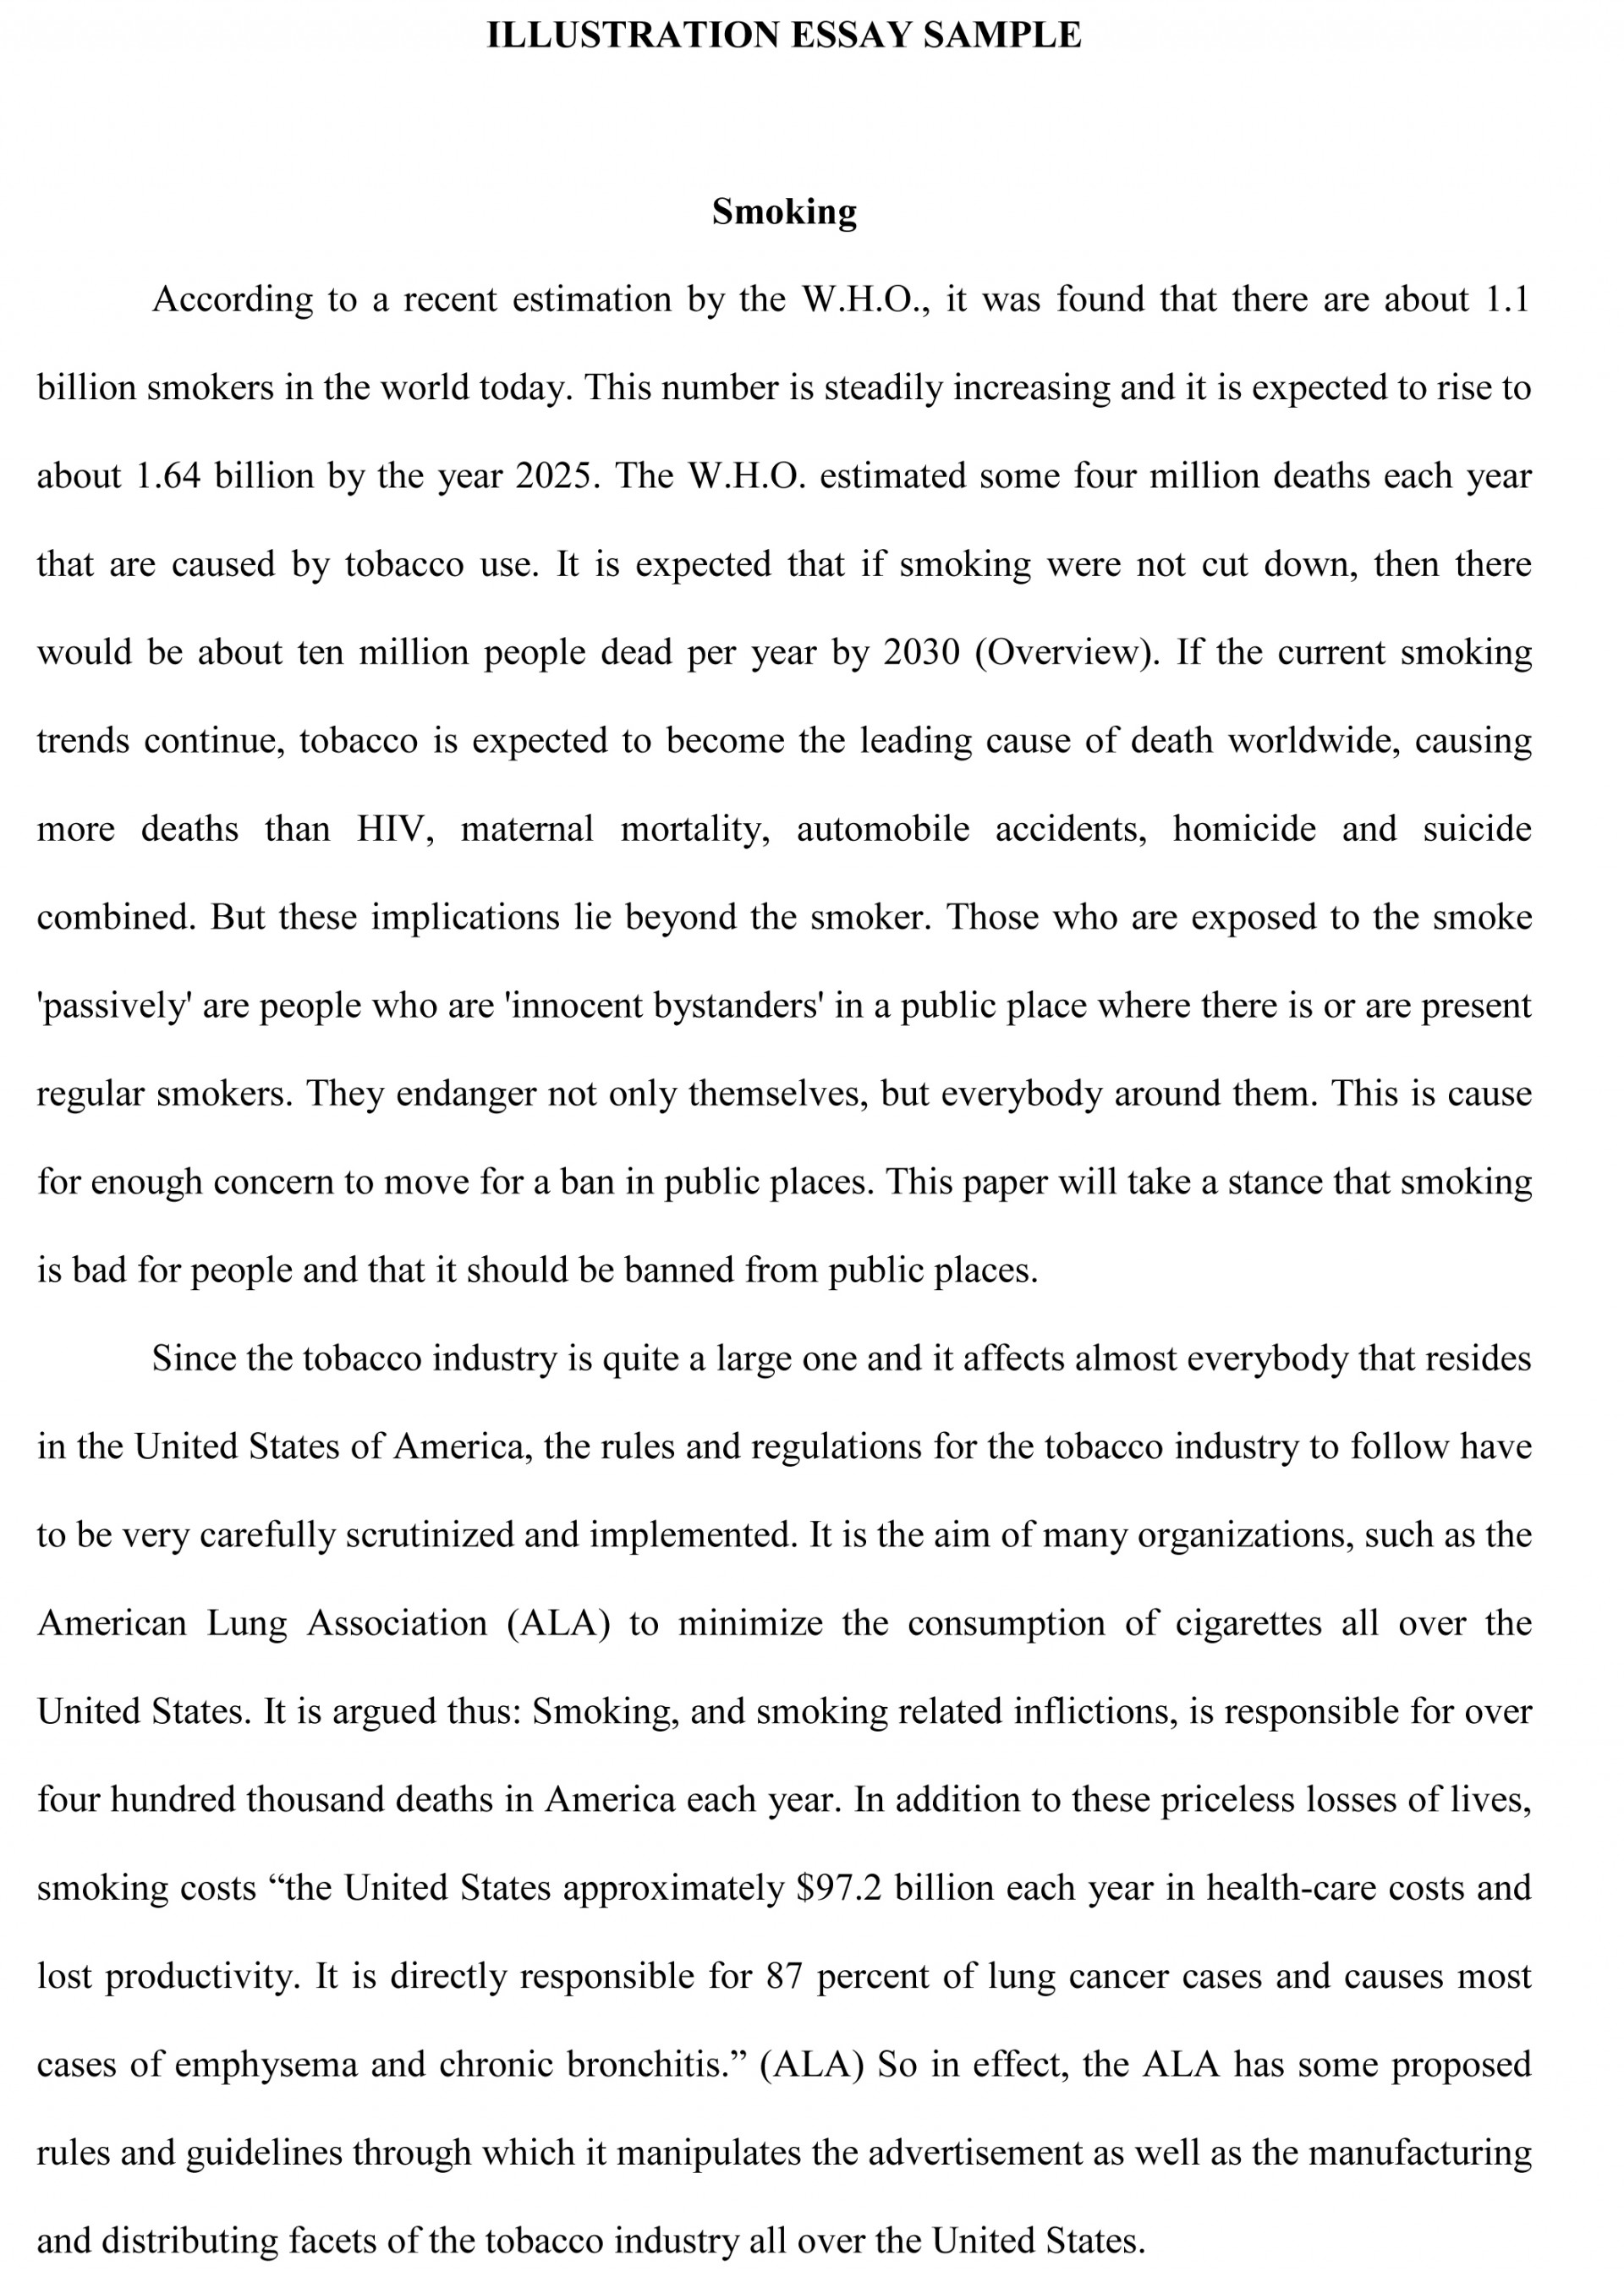 005 Illustration Essay Sample Anorexia Best Nervosa Conclusion Introduction Paper Outline 1920